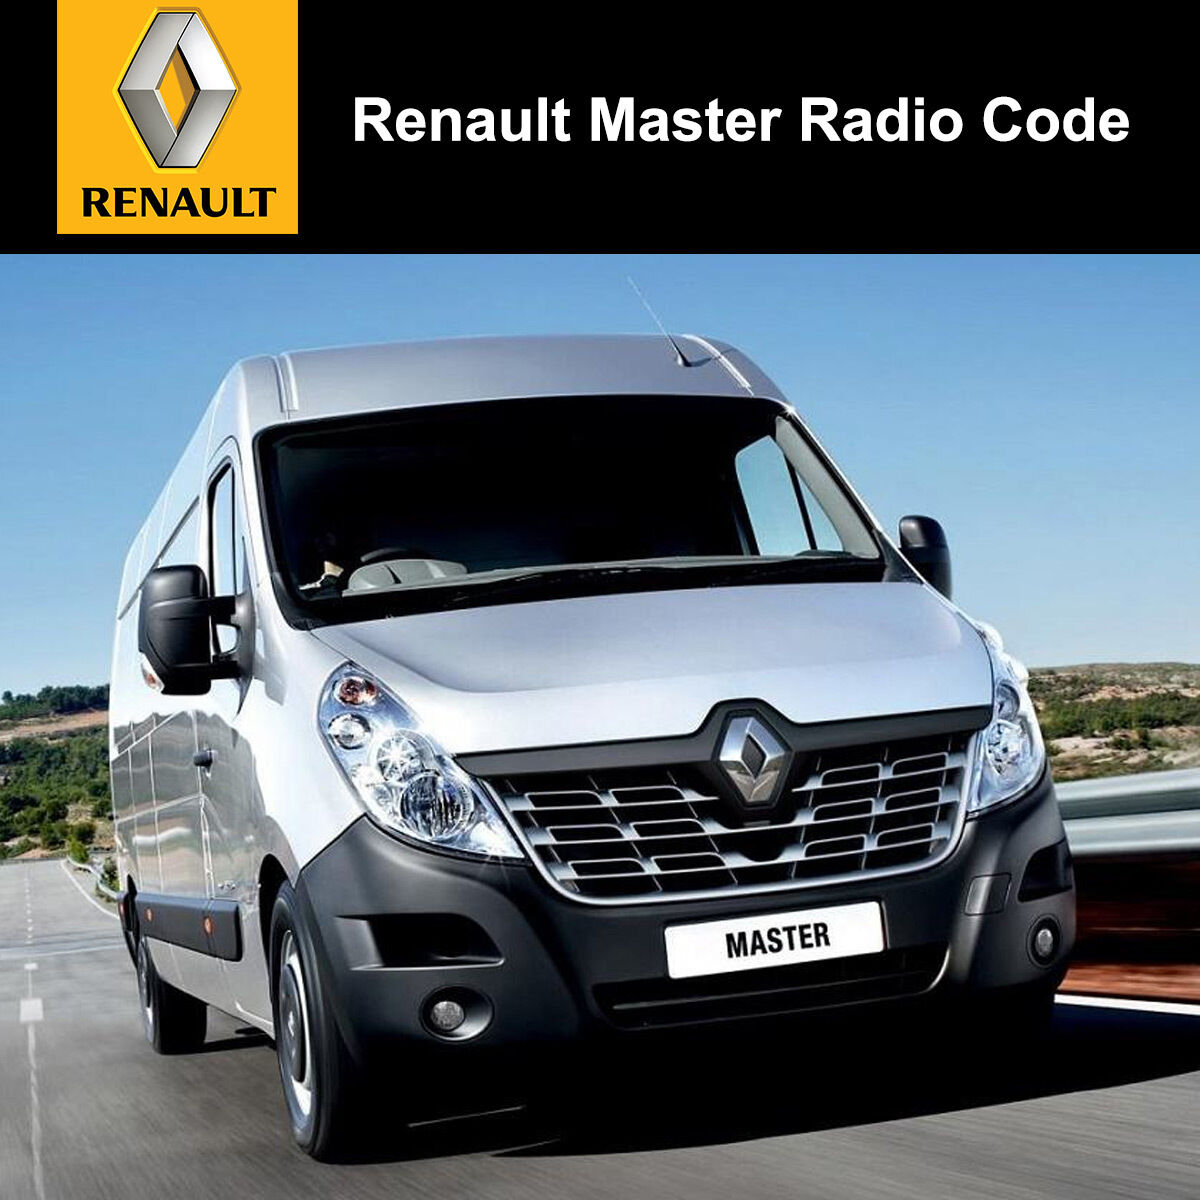 Renault Master Radio Code Stereo Decode Car Unlock Fast Service Uk All Vehicles Ebay